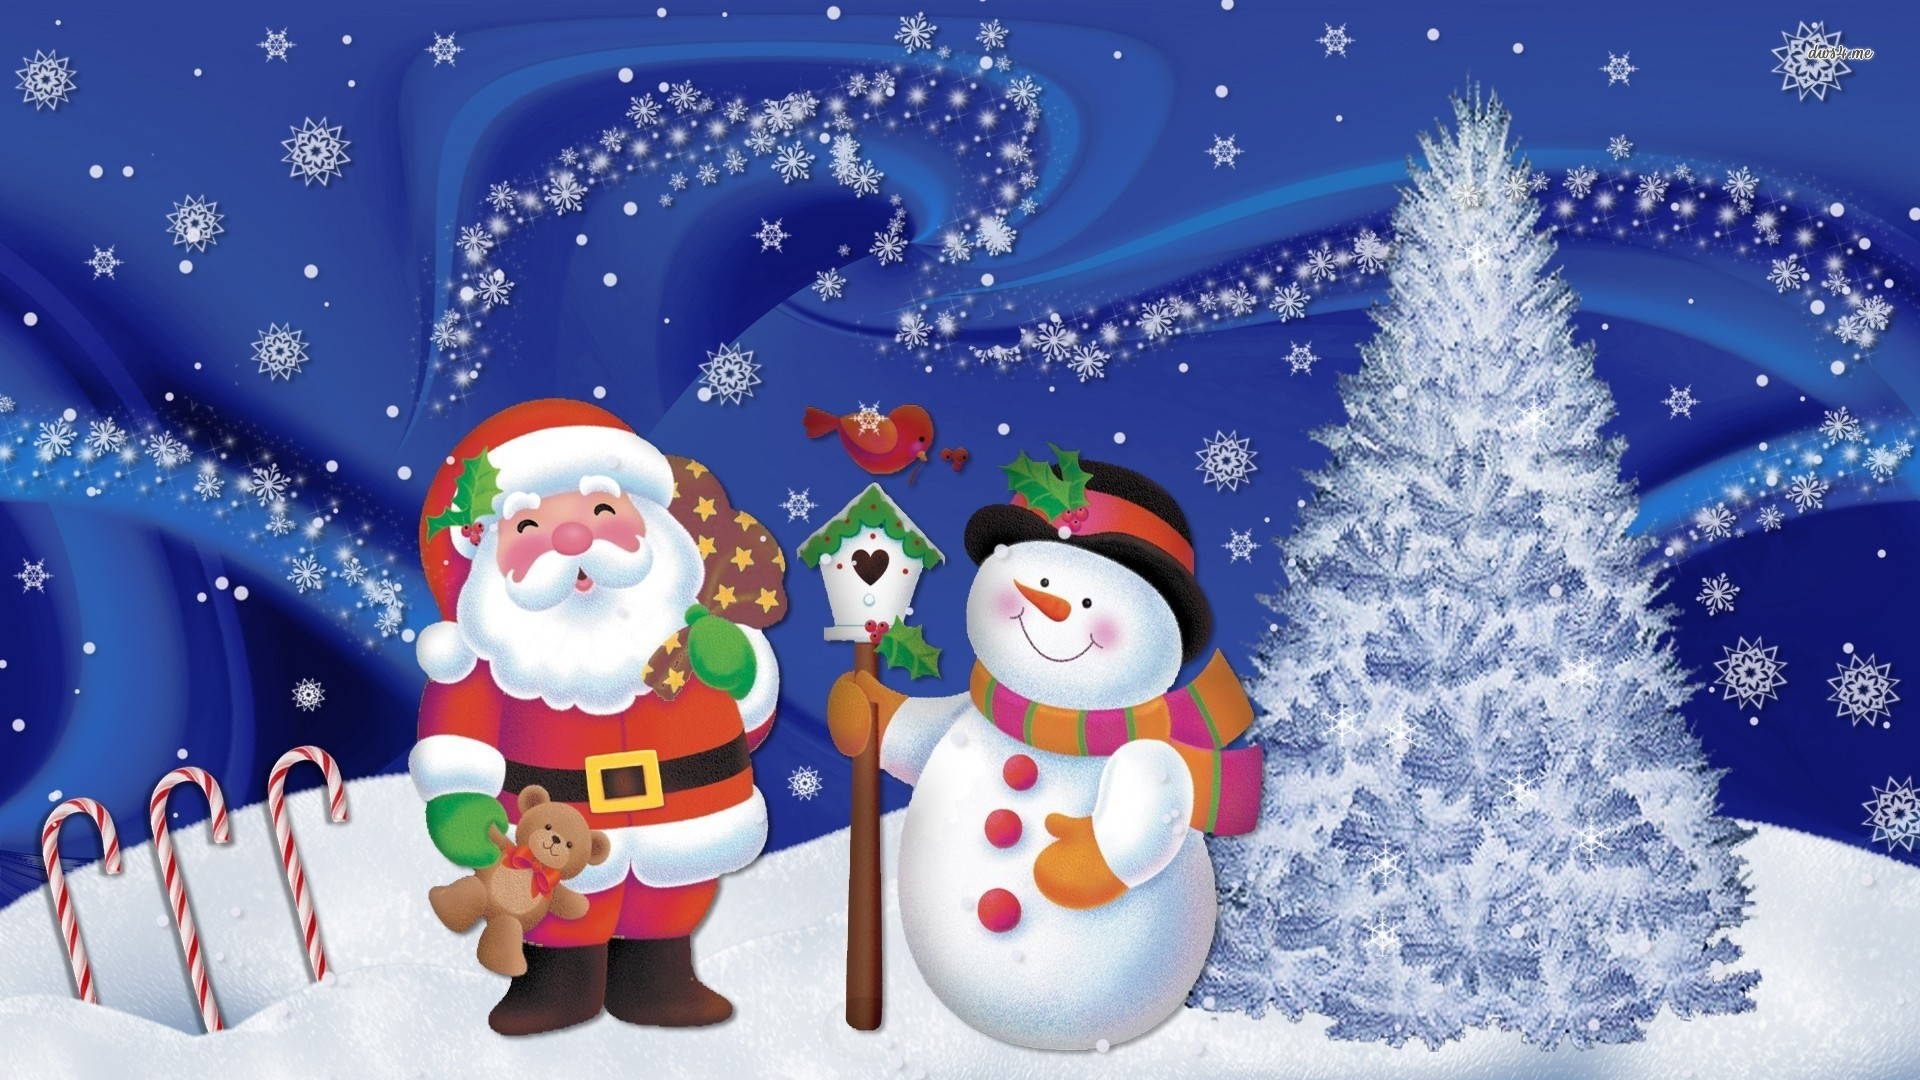 christmas snowman wallpapers high quality | download free